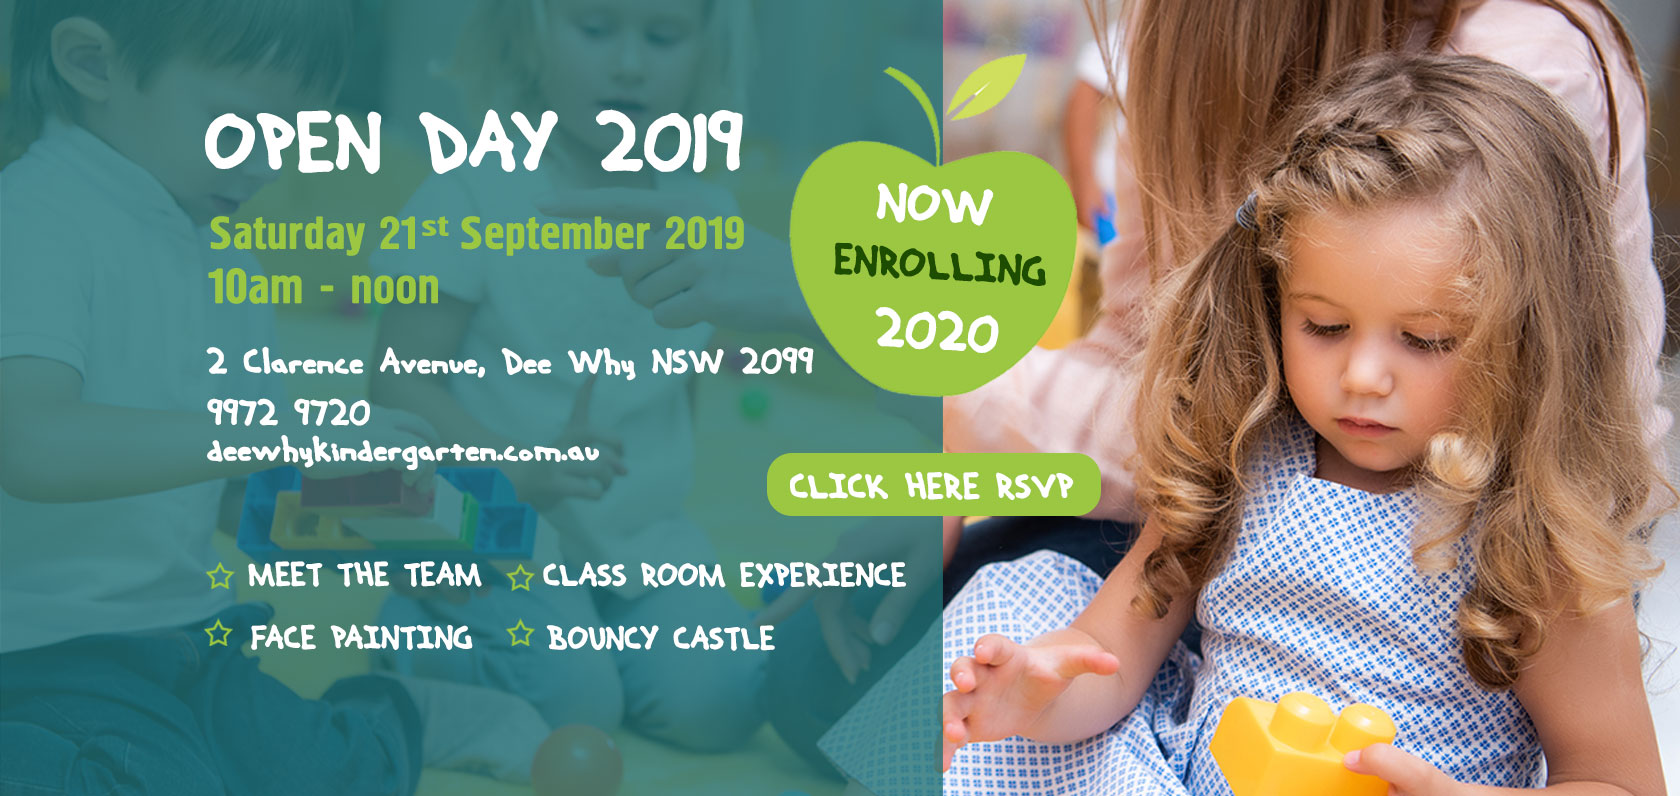 Child Care Dee Why - OPEN DAY 2019